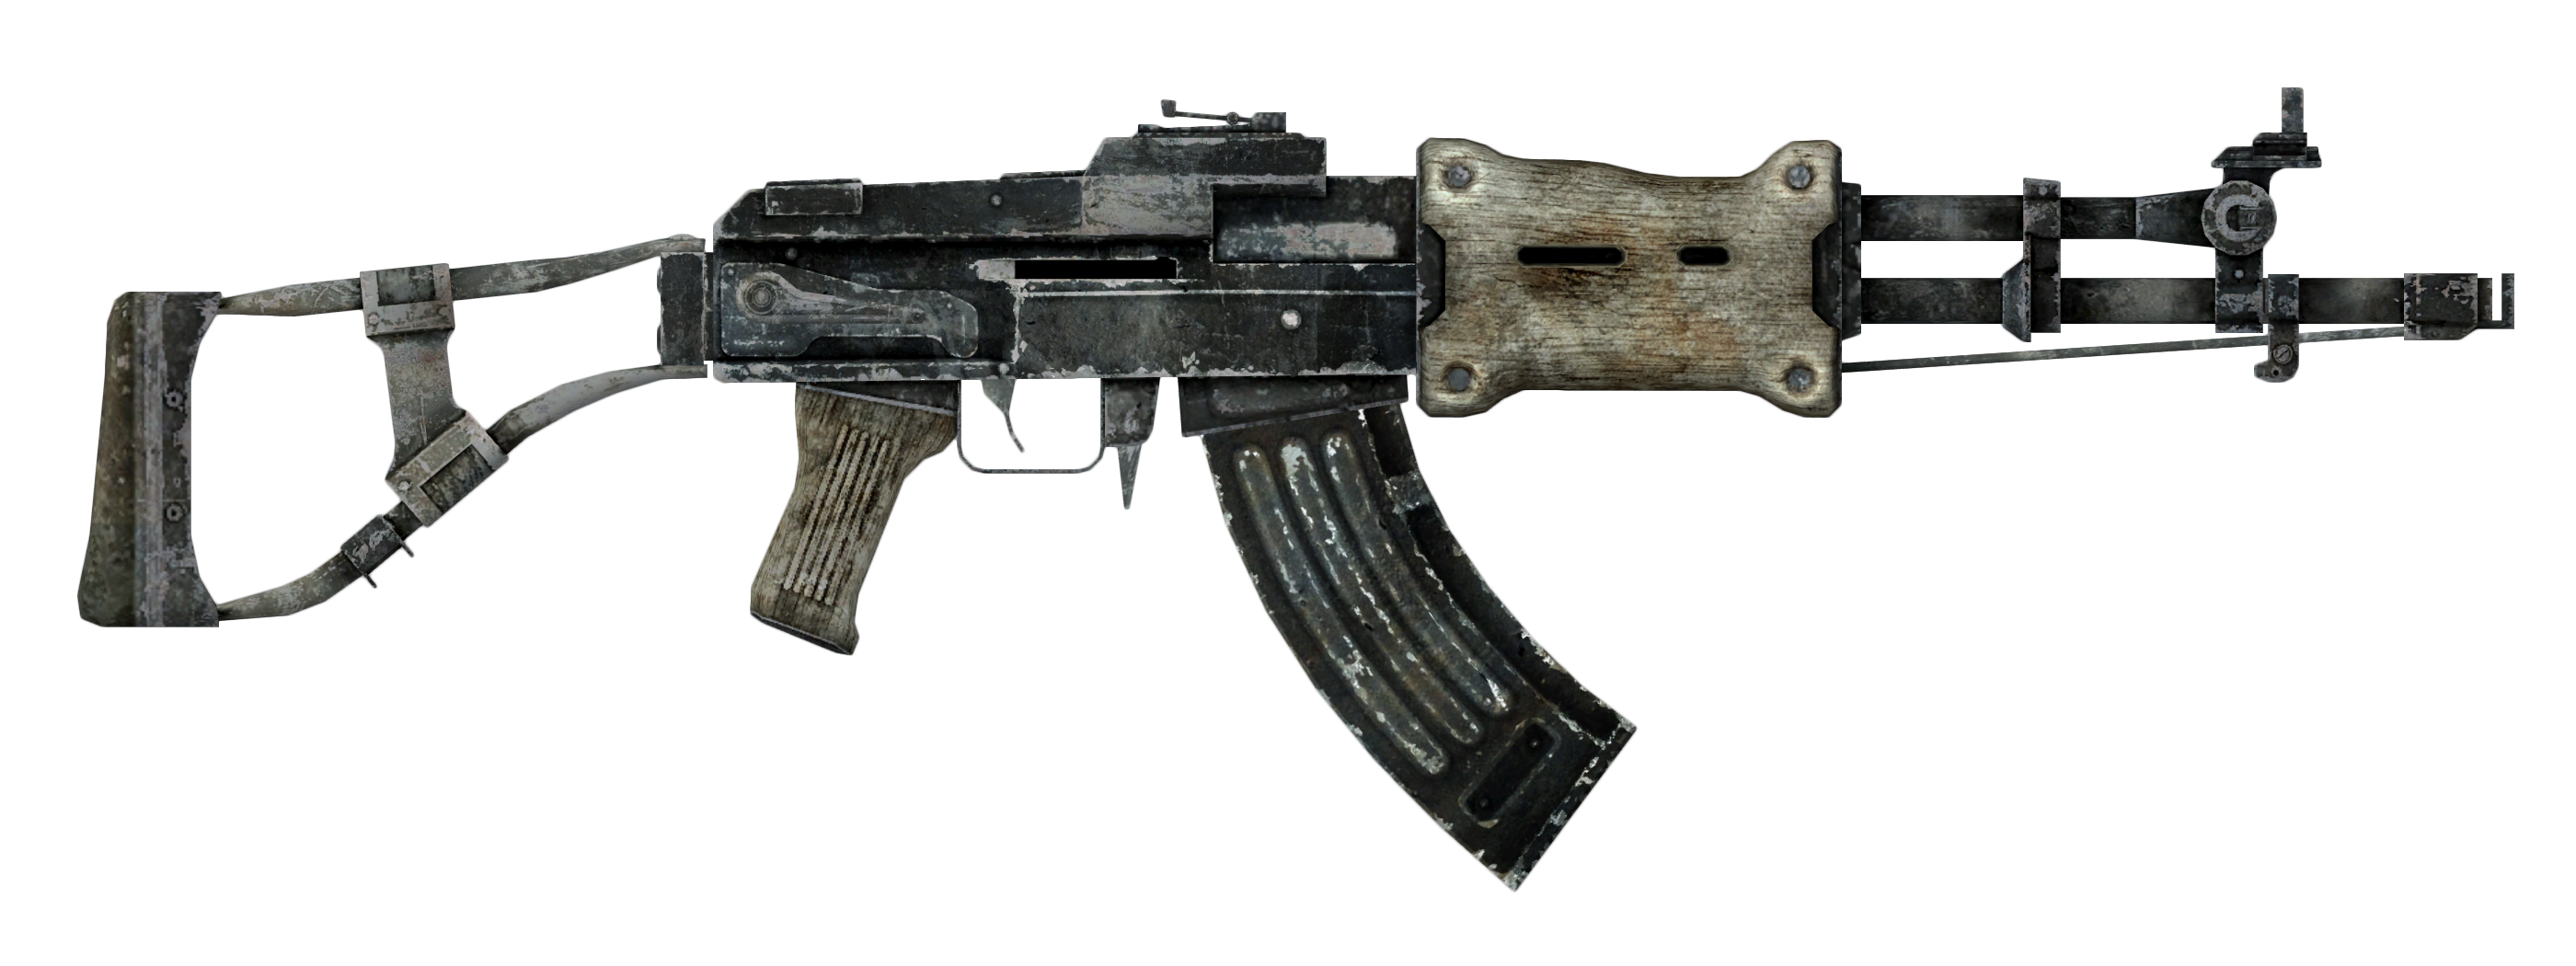 IMG:http://images4.wikia.nocookie.net/__cb57088/fallout/images/a/a1/Chinese_assault_rifle.png